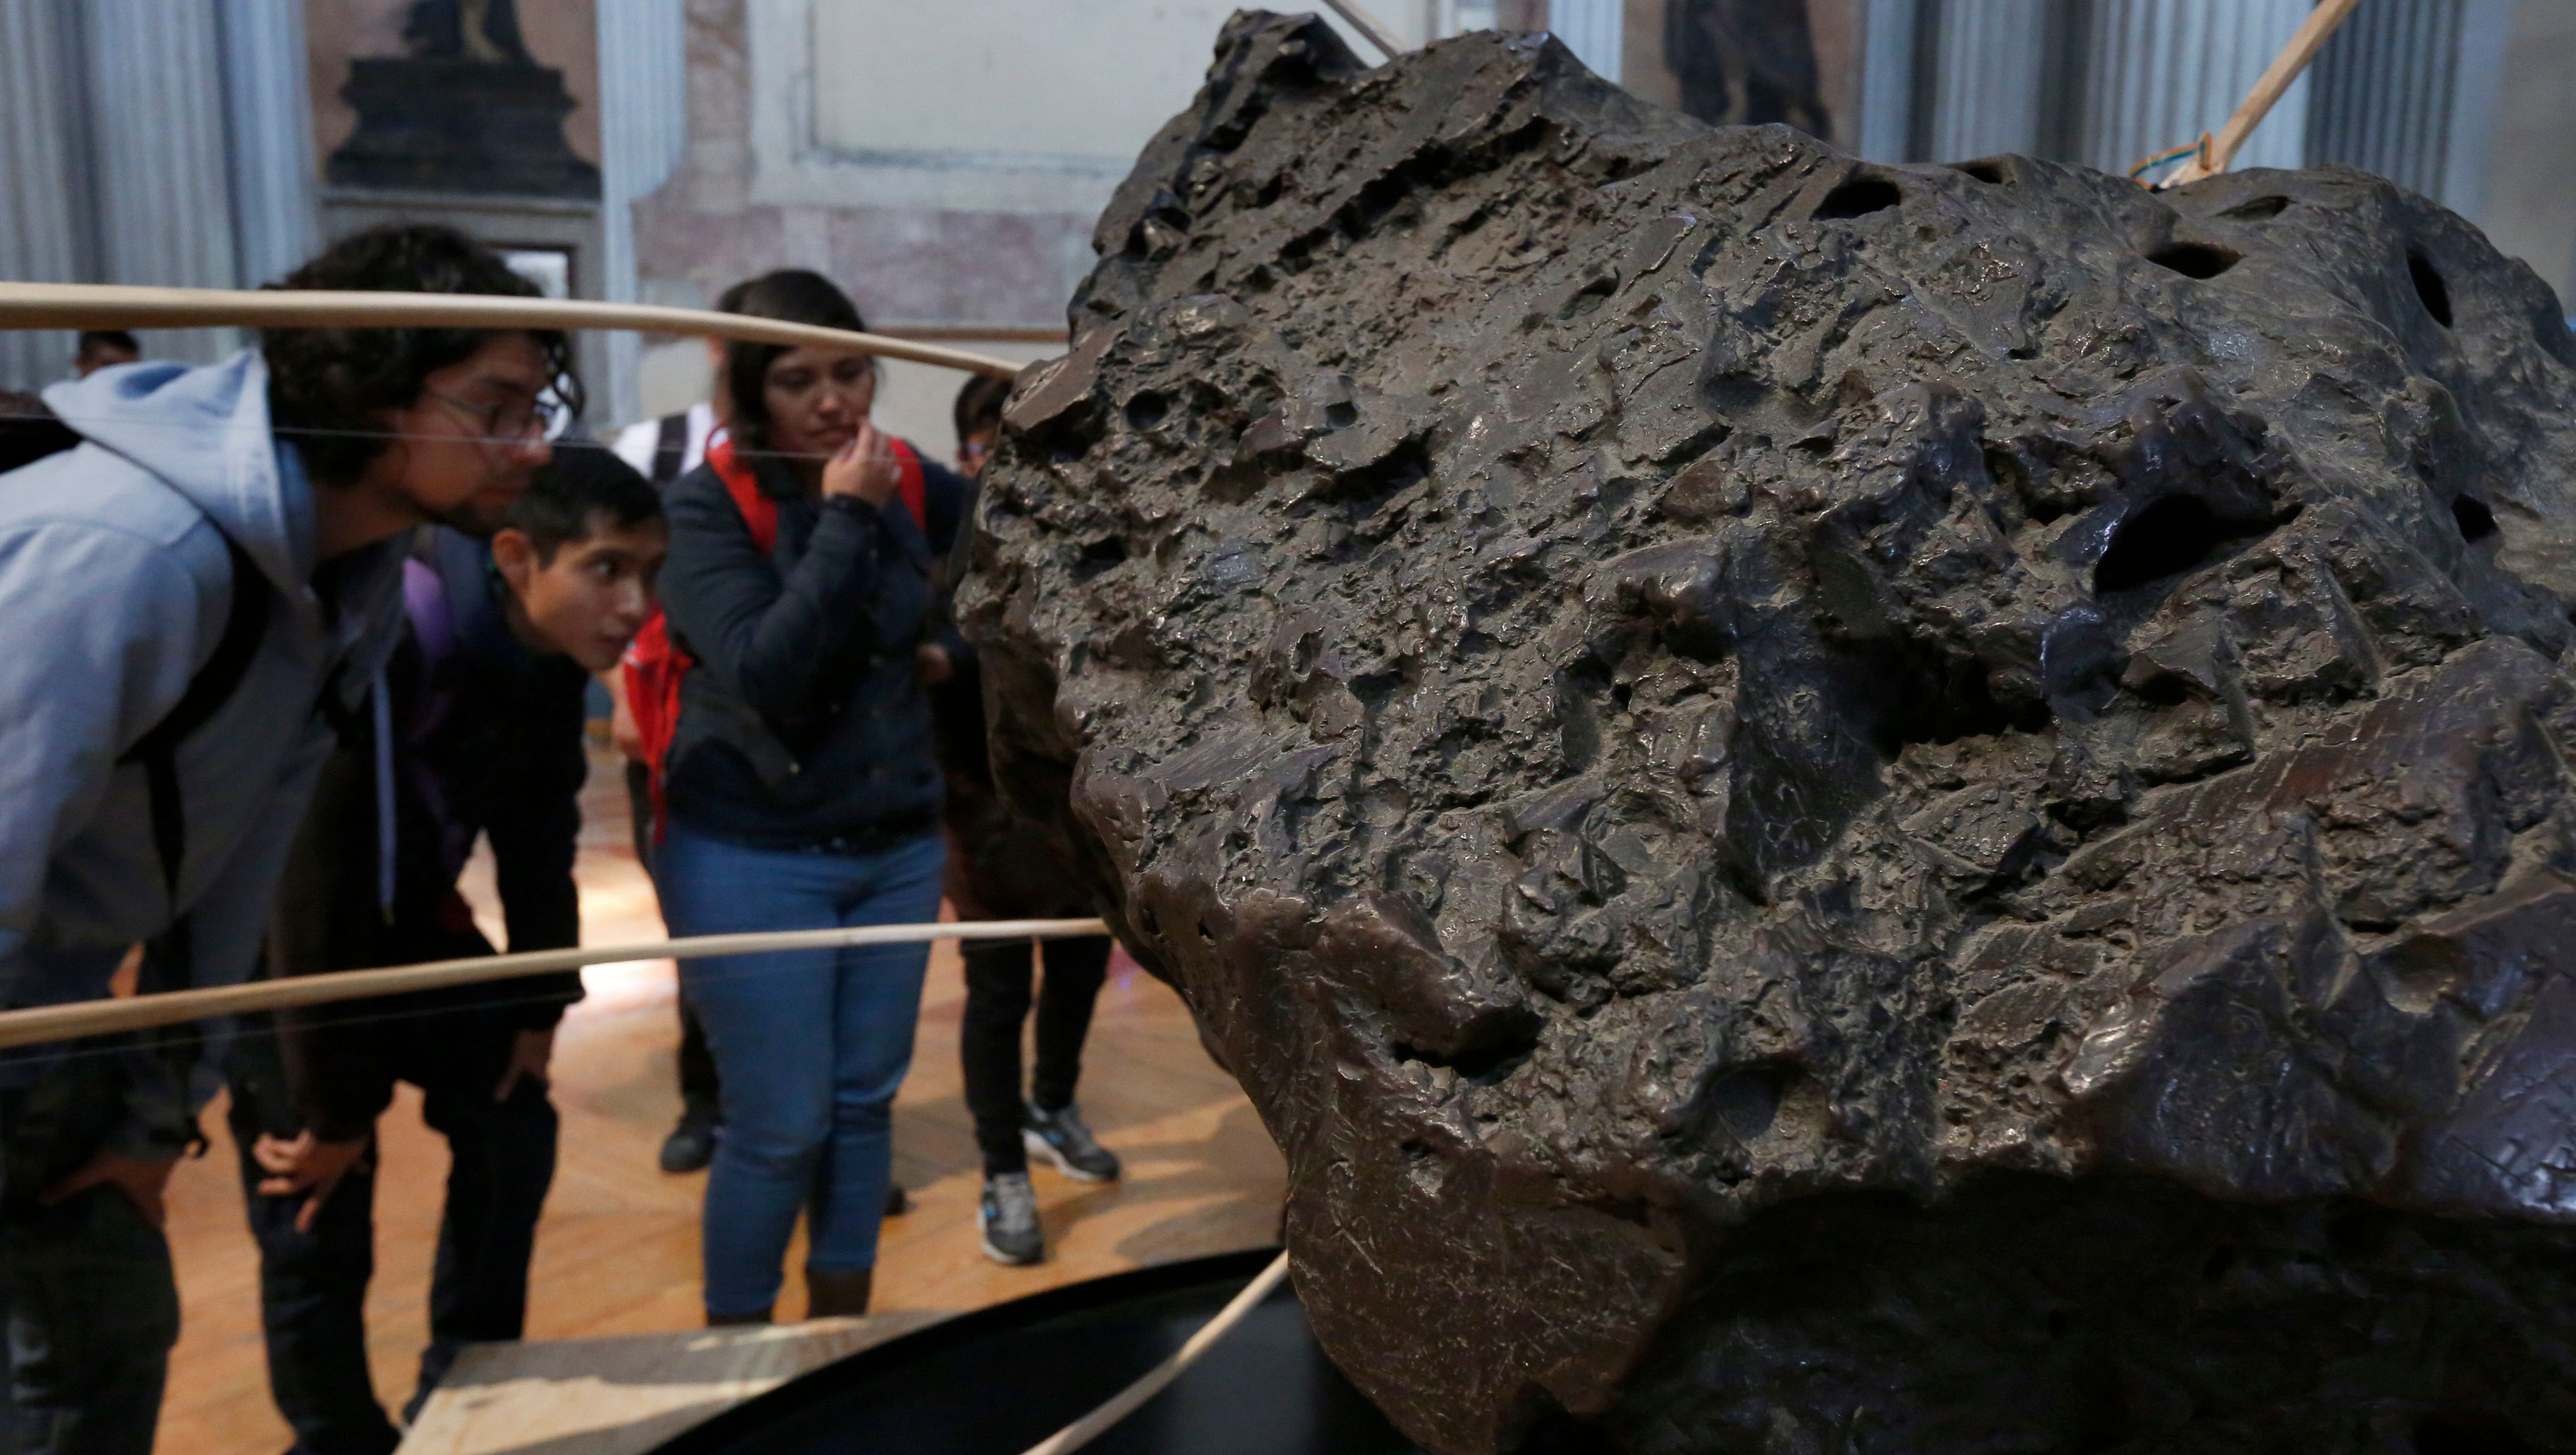 """People look at """"La Concepcion"""" meteorite at the Ex Teresa Arte Actual Museum in Mexico City, Monday, Oct. 10, 2016. The Meteorite was found in the state of Chihuahua during the XVII century and is being displayed with special instruments that create sounds based on the meteorite's surface irregularities and magnetic field. (AP Photo/Marco Ugarte)"""